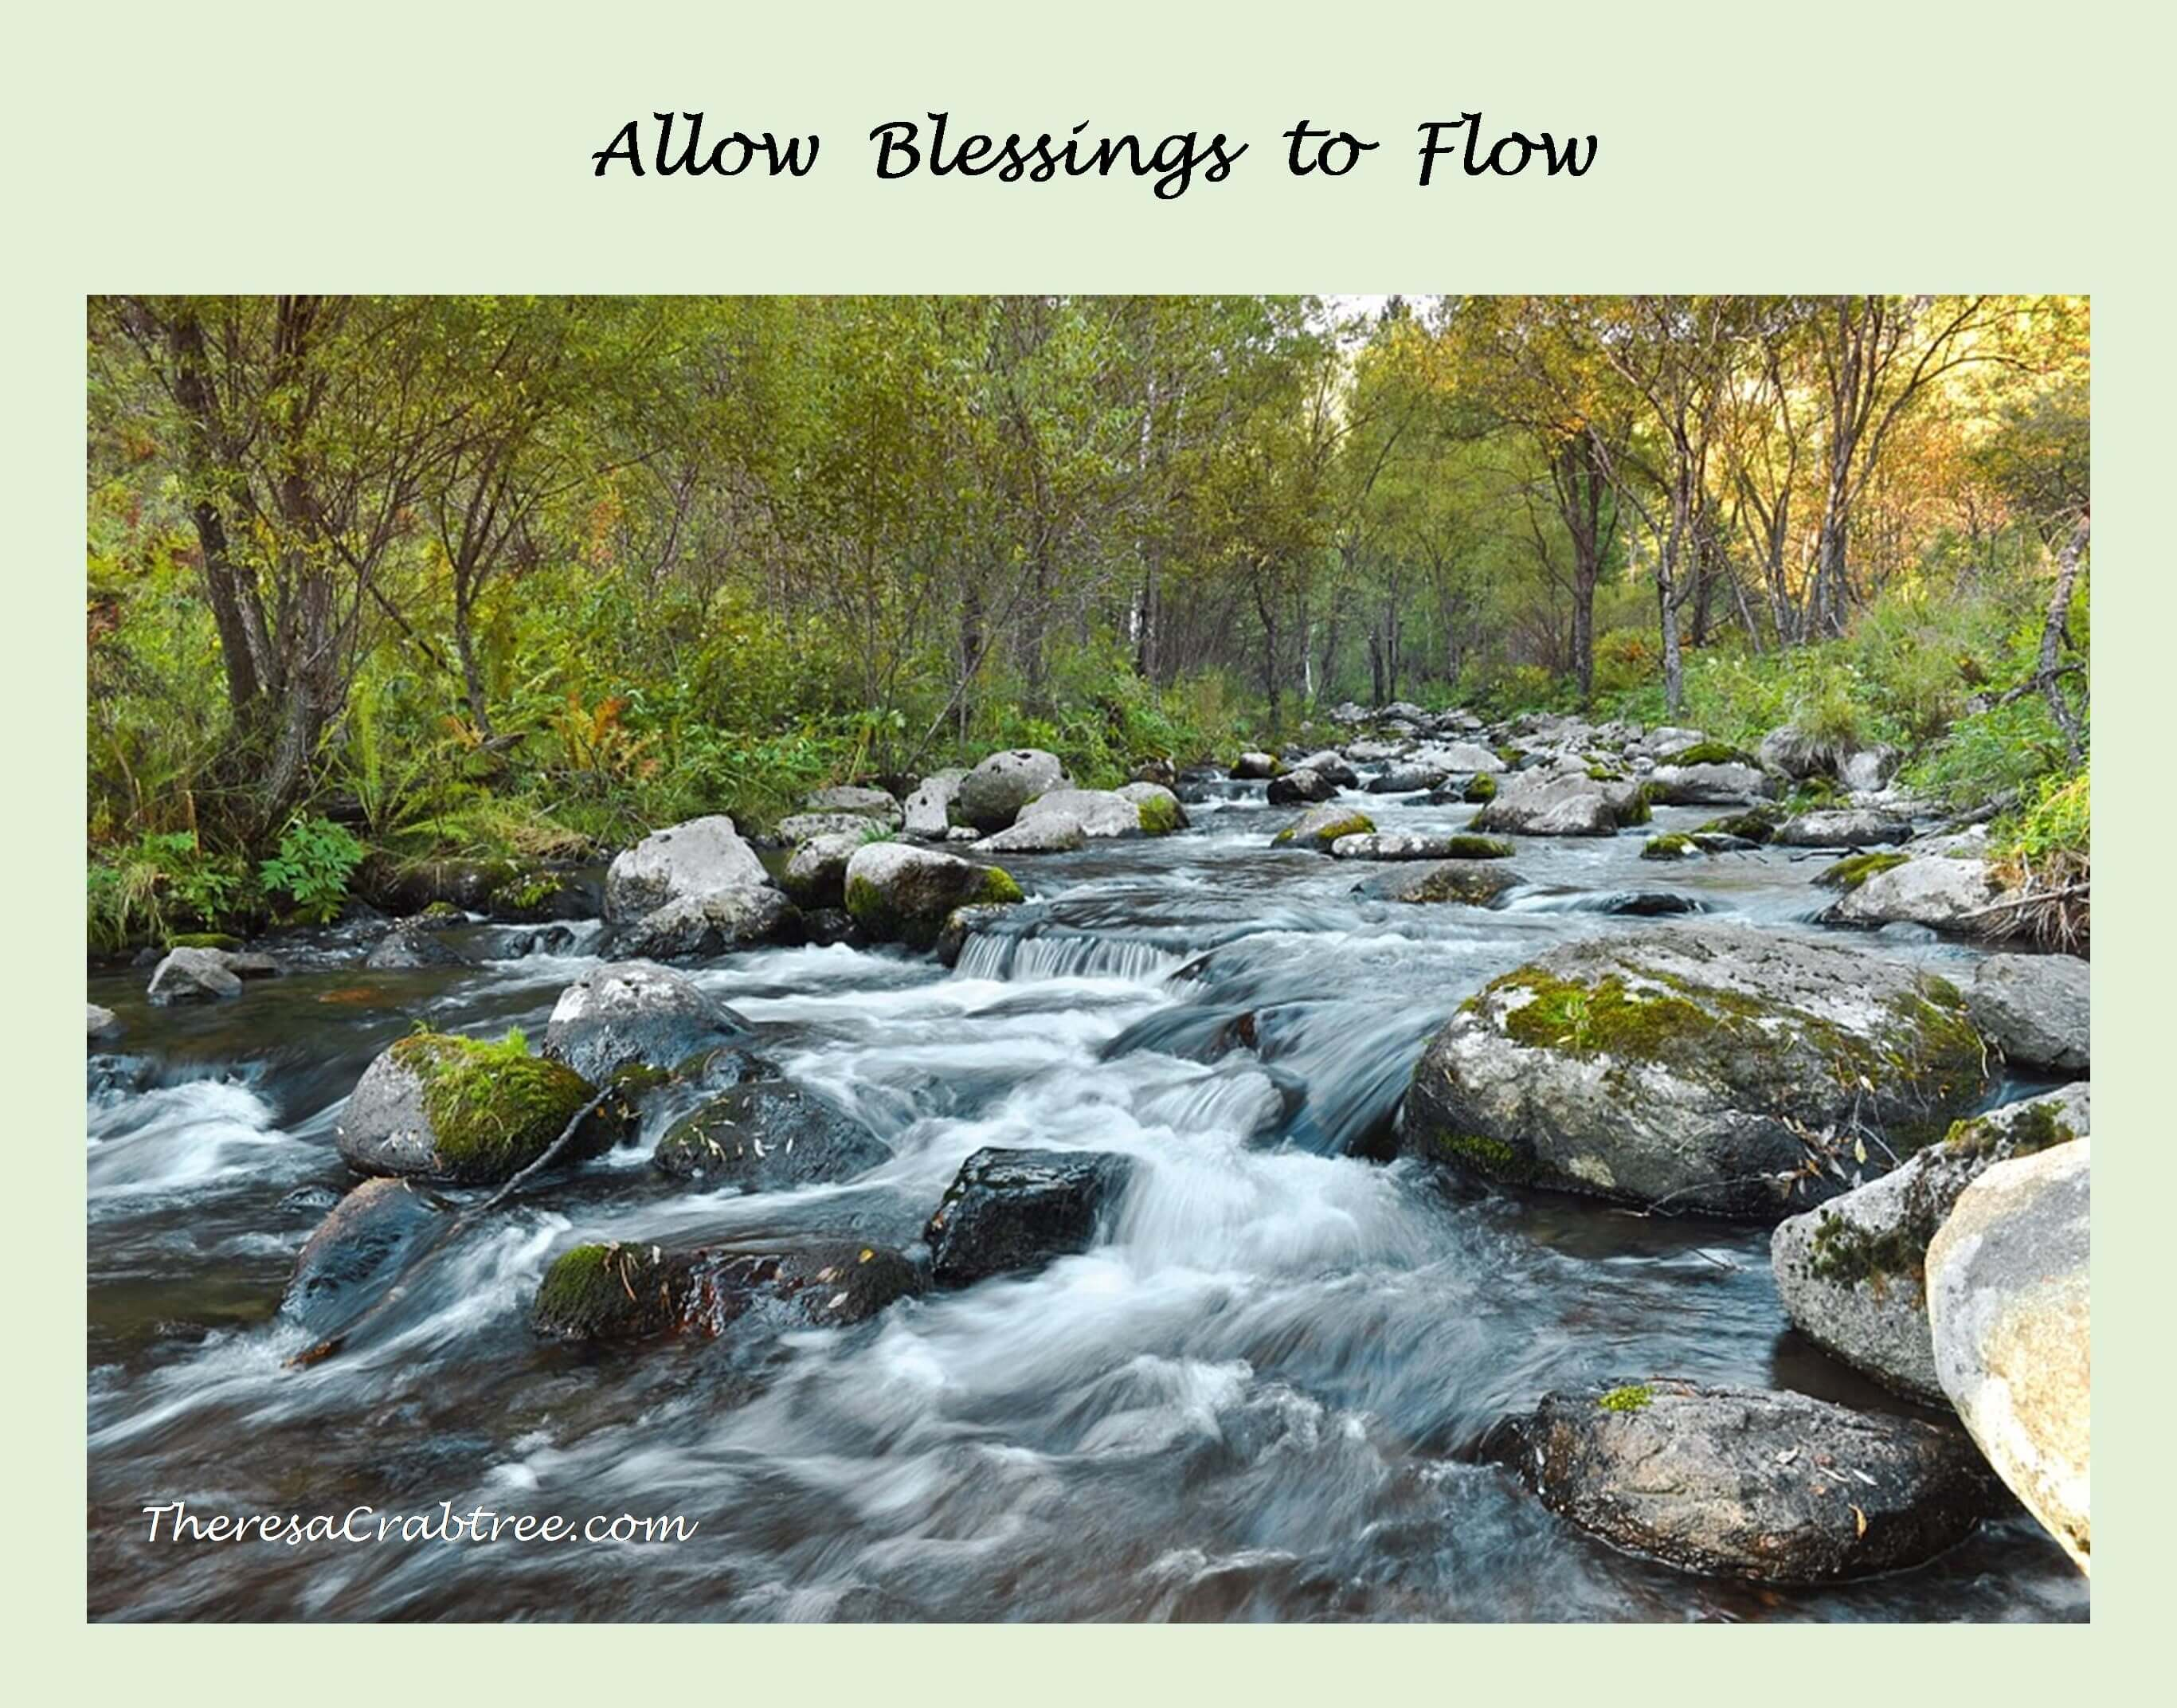 Allow Blessings to Flow